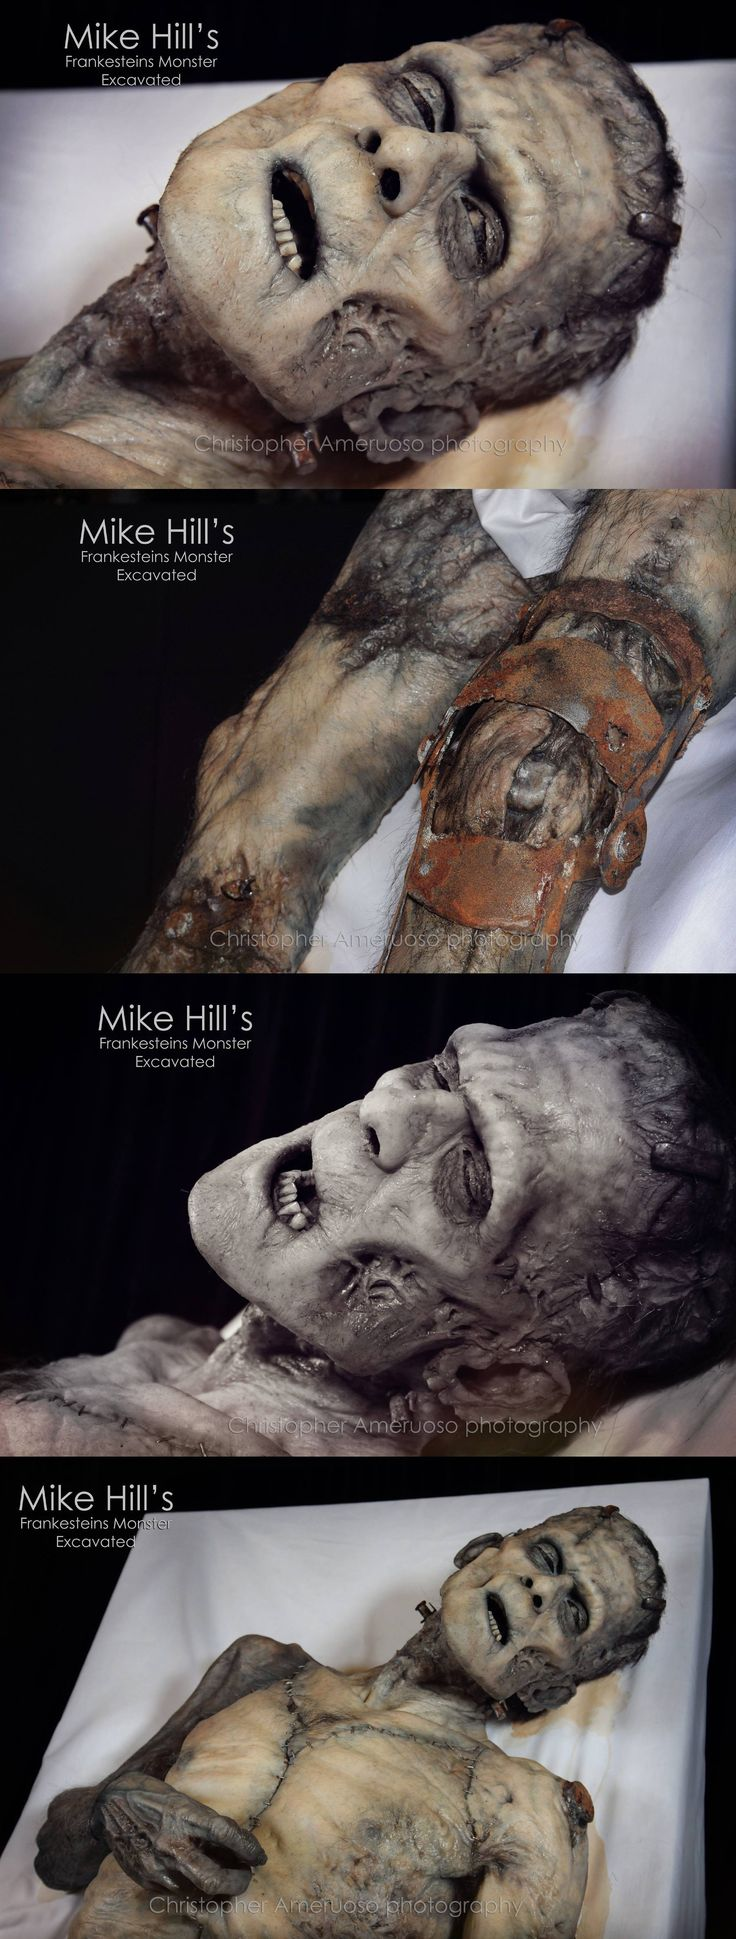 """Monsterpalooza 2014. Mike Hill's amazing """"Frankenstein's Monster Excavated"""".  Amazing textural reference. Decay. Rotten skin, death."""